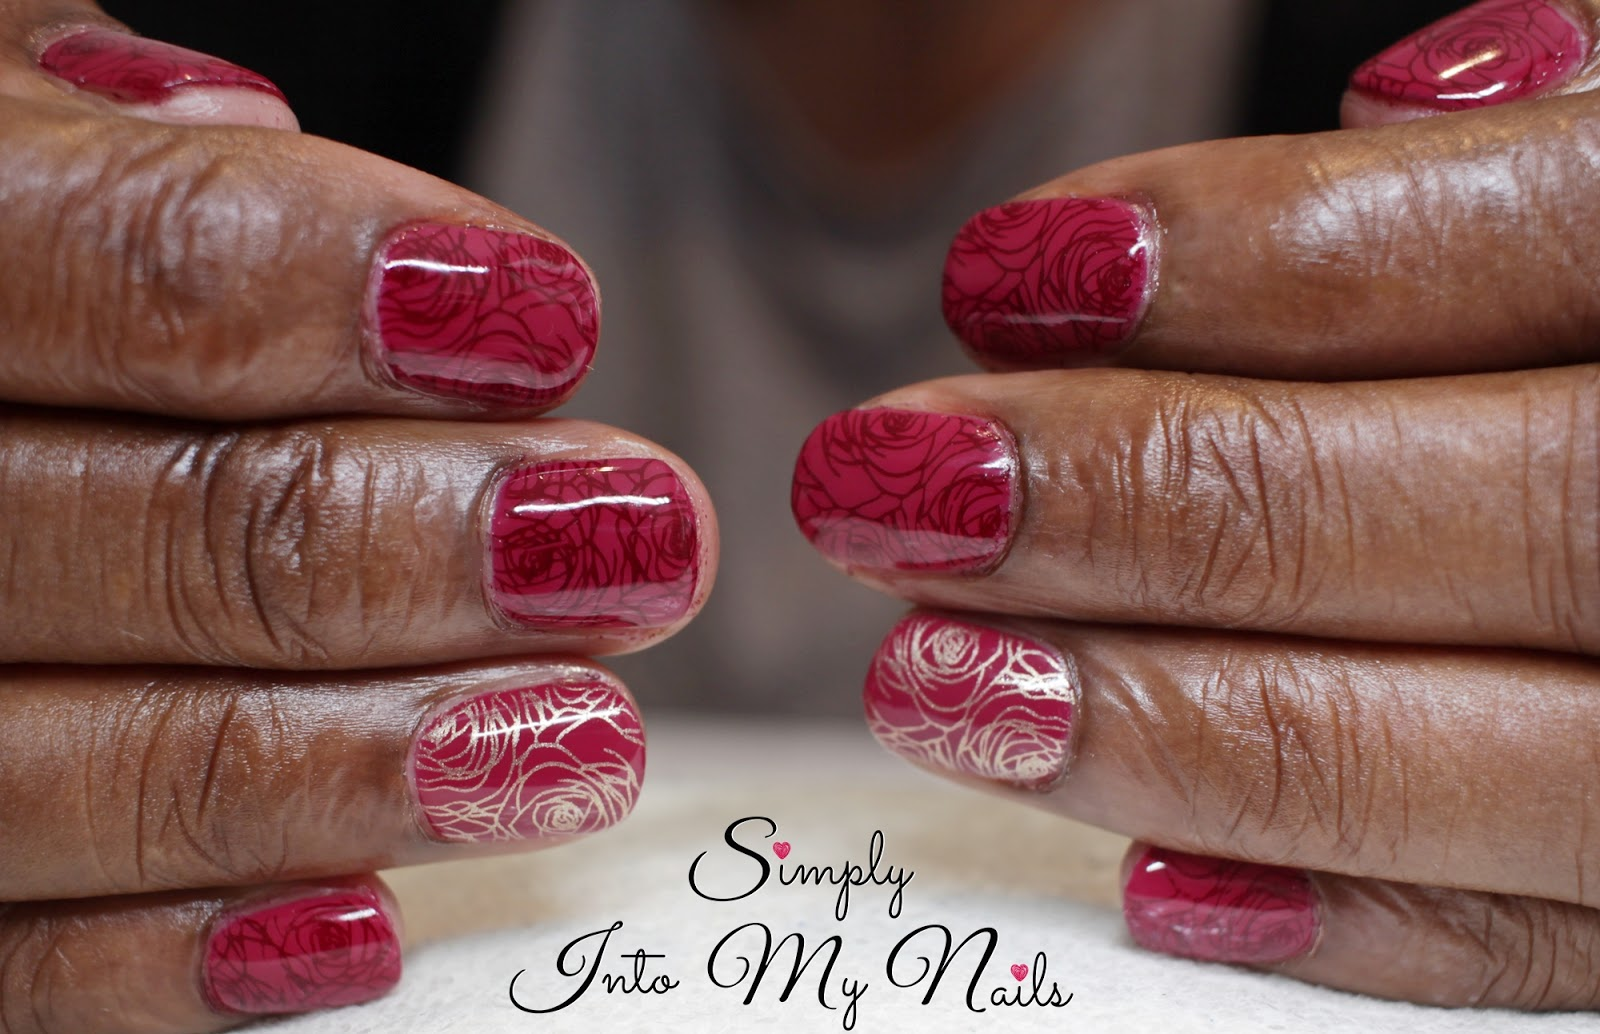 My Clients   Simply Into My NAILS